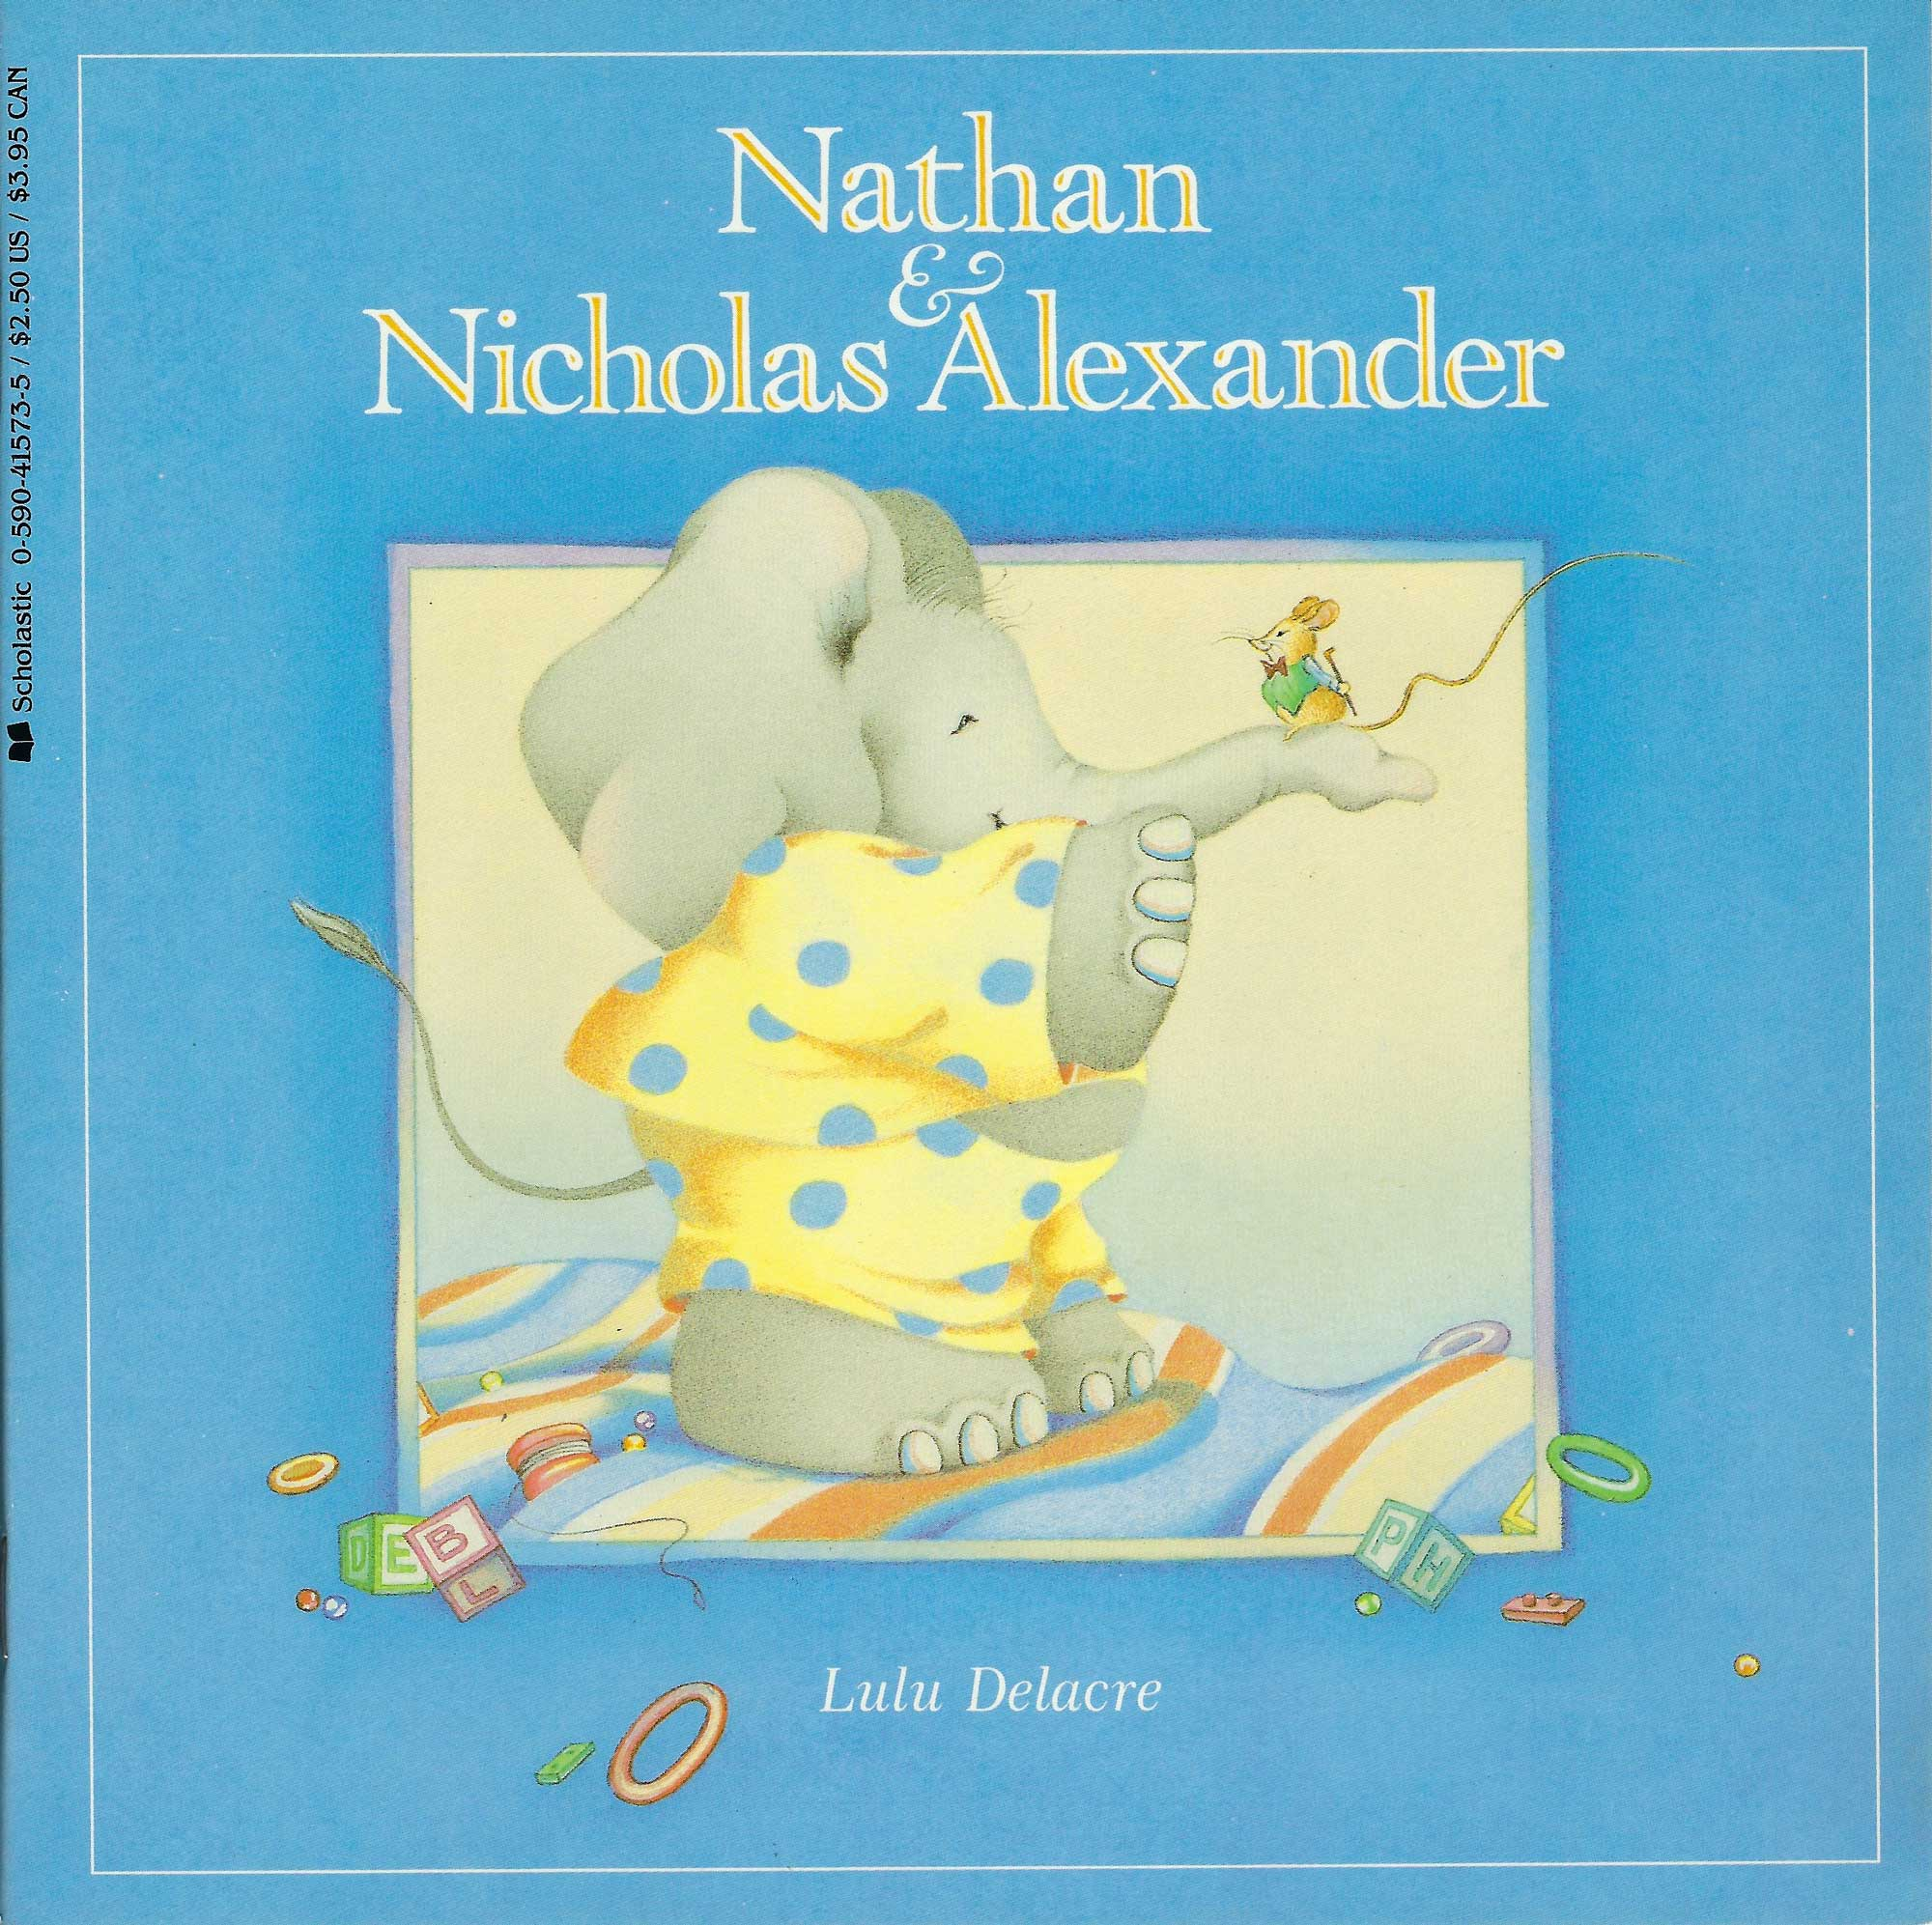 nathan and nicholas alexander childrens book